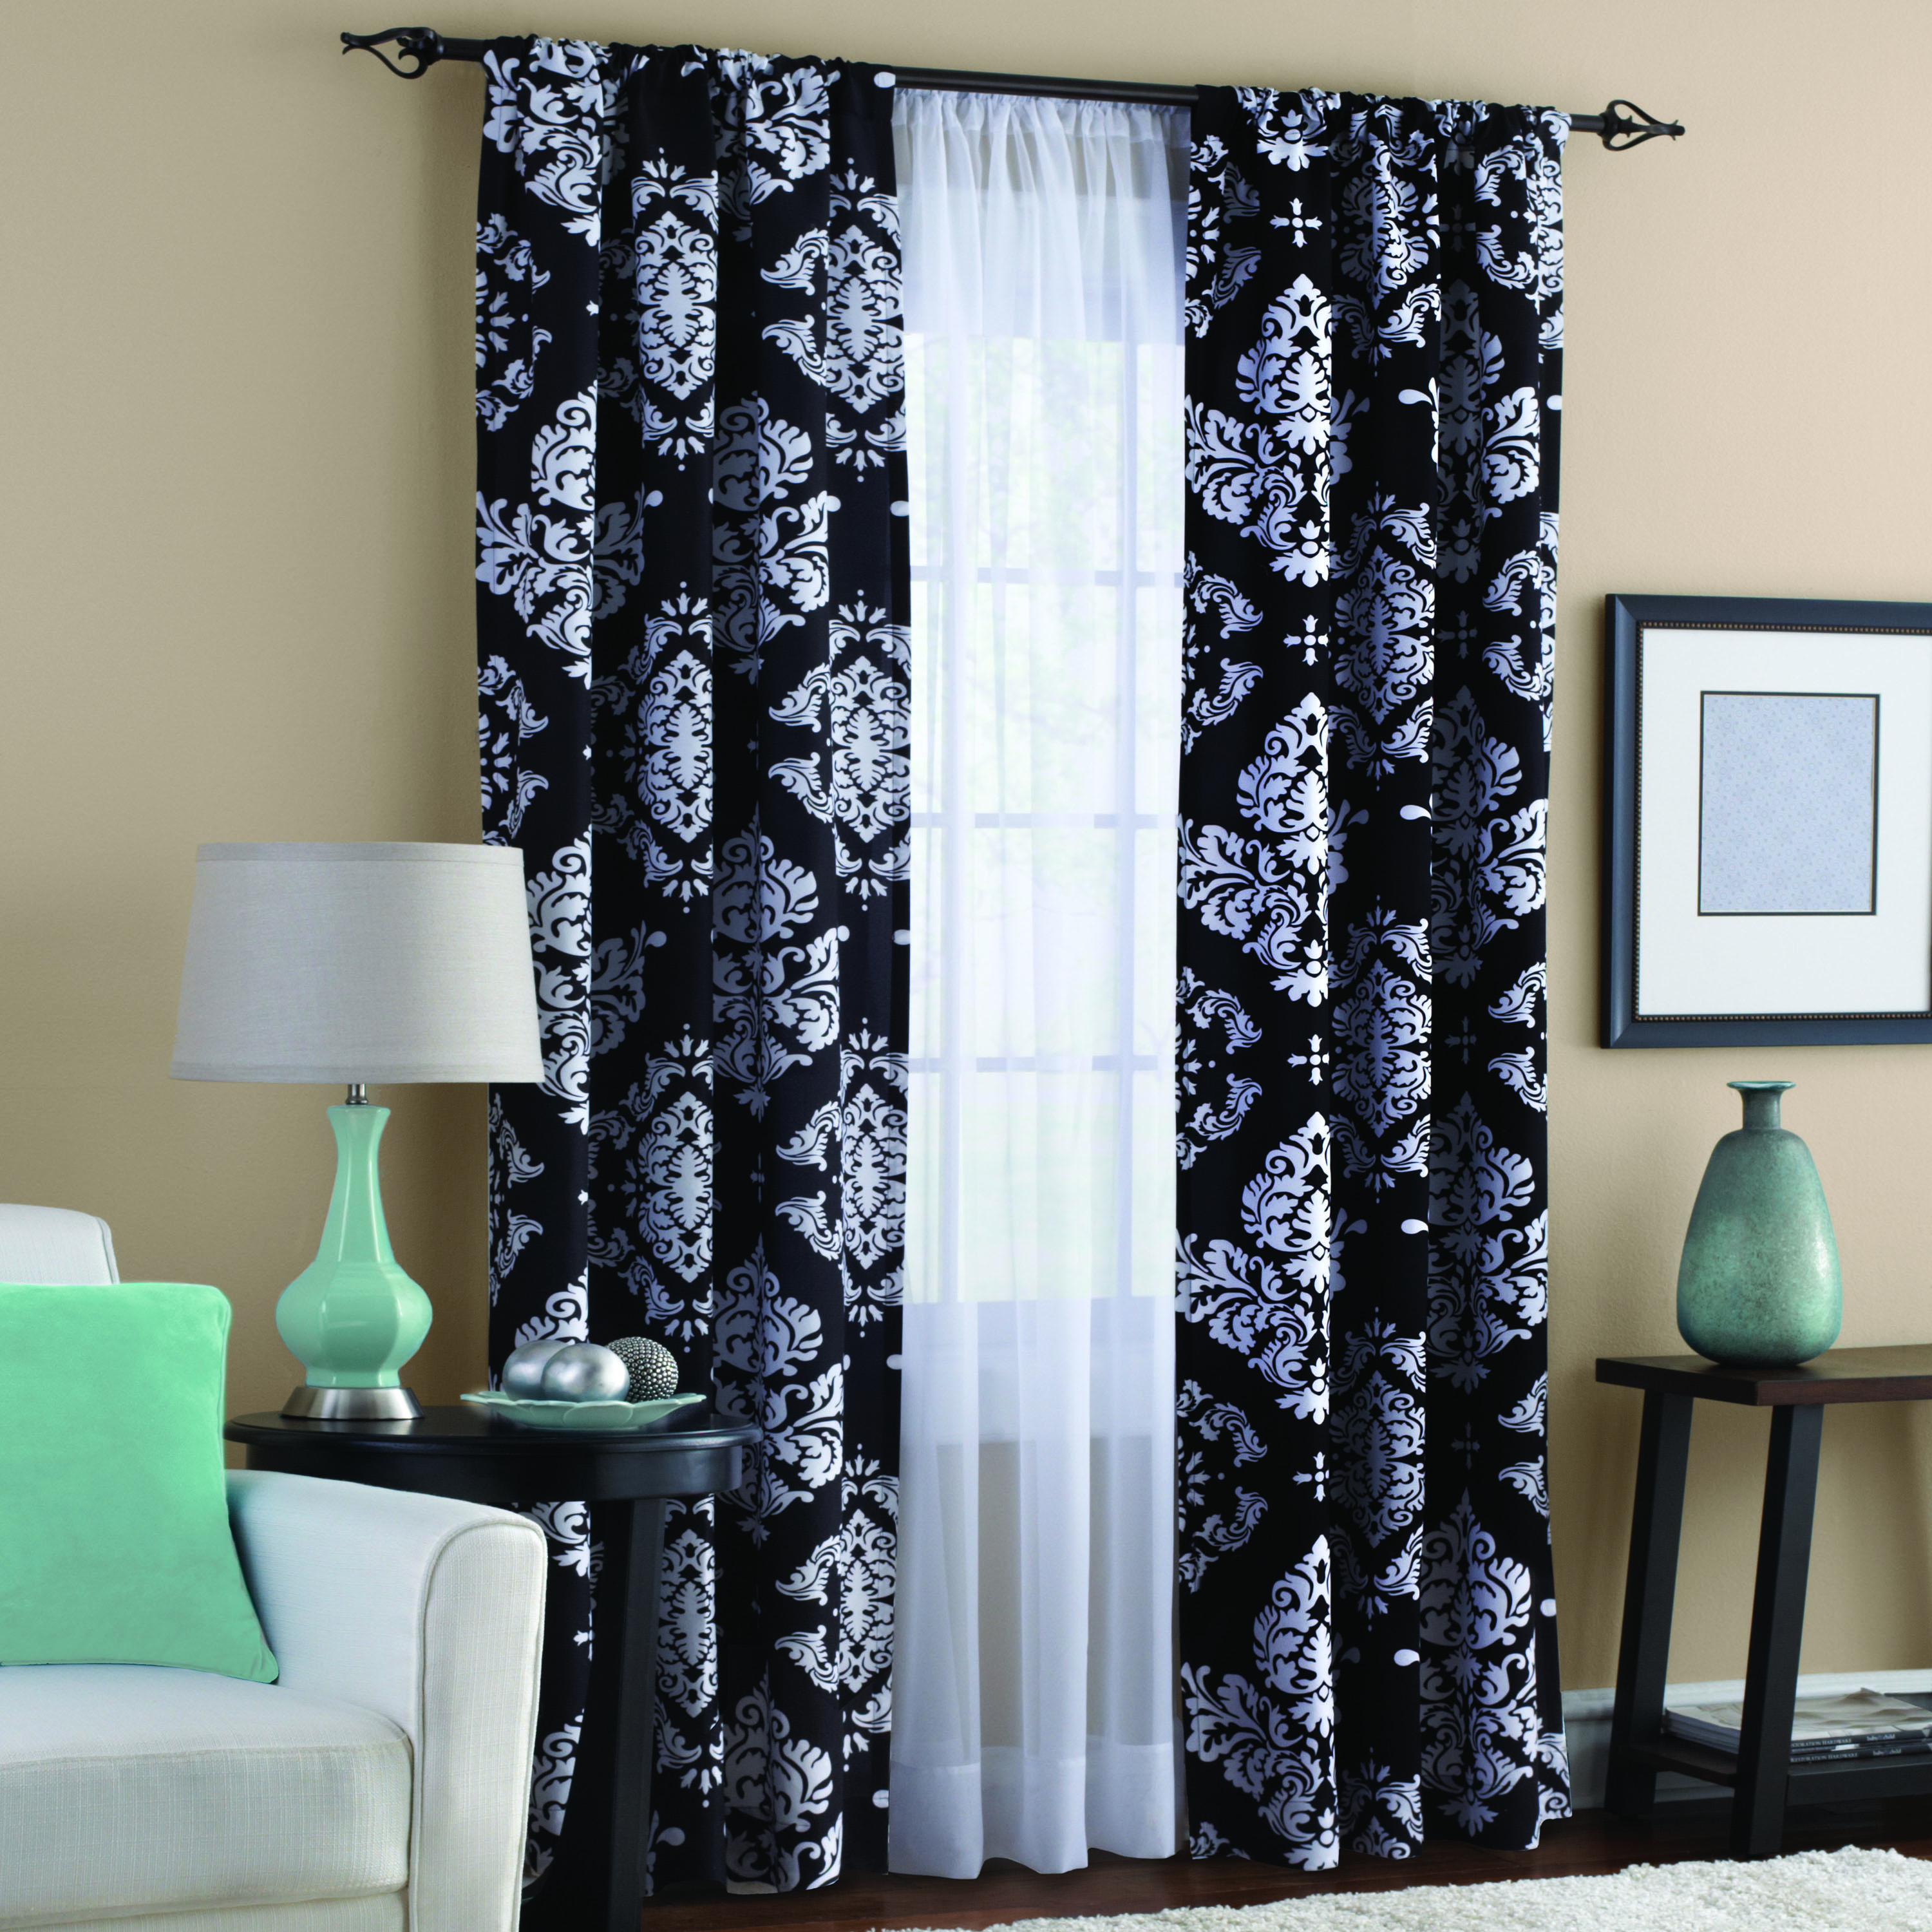 Classic Noir Black and White Window Curtain - Walmart.com